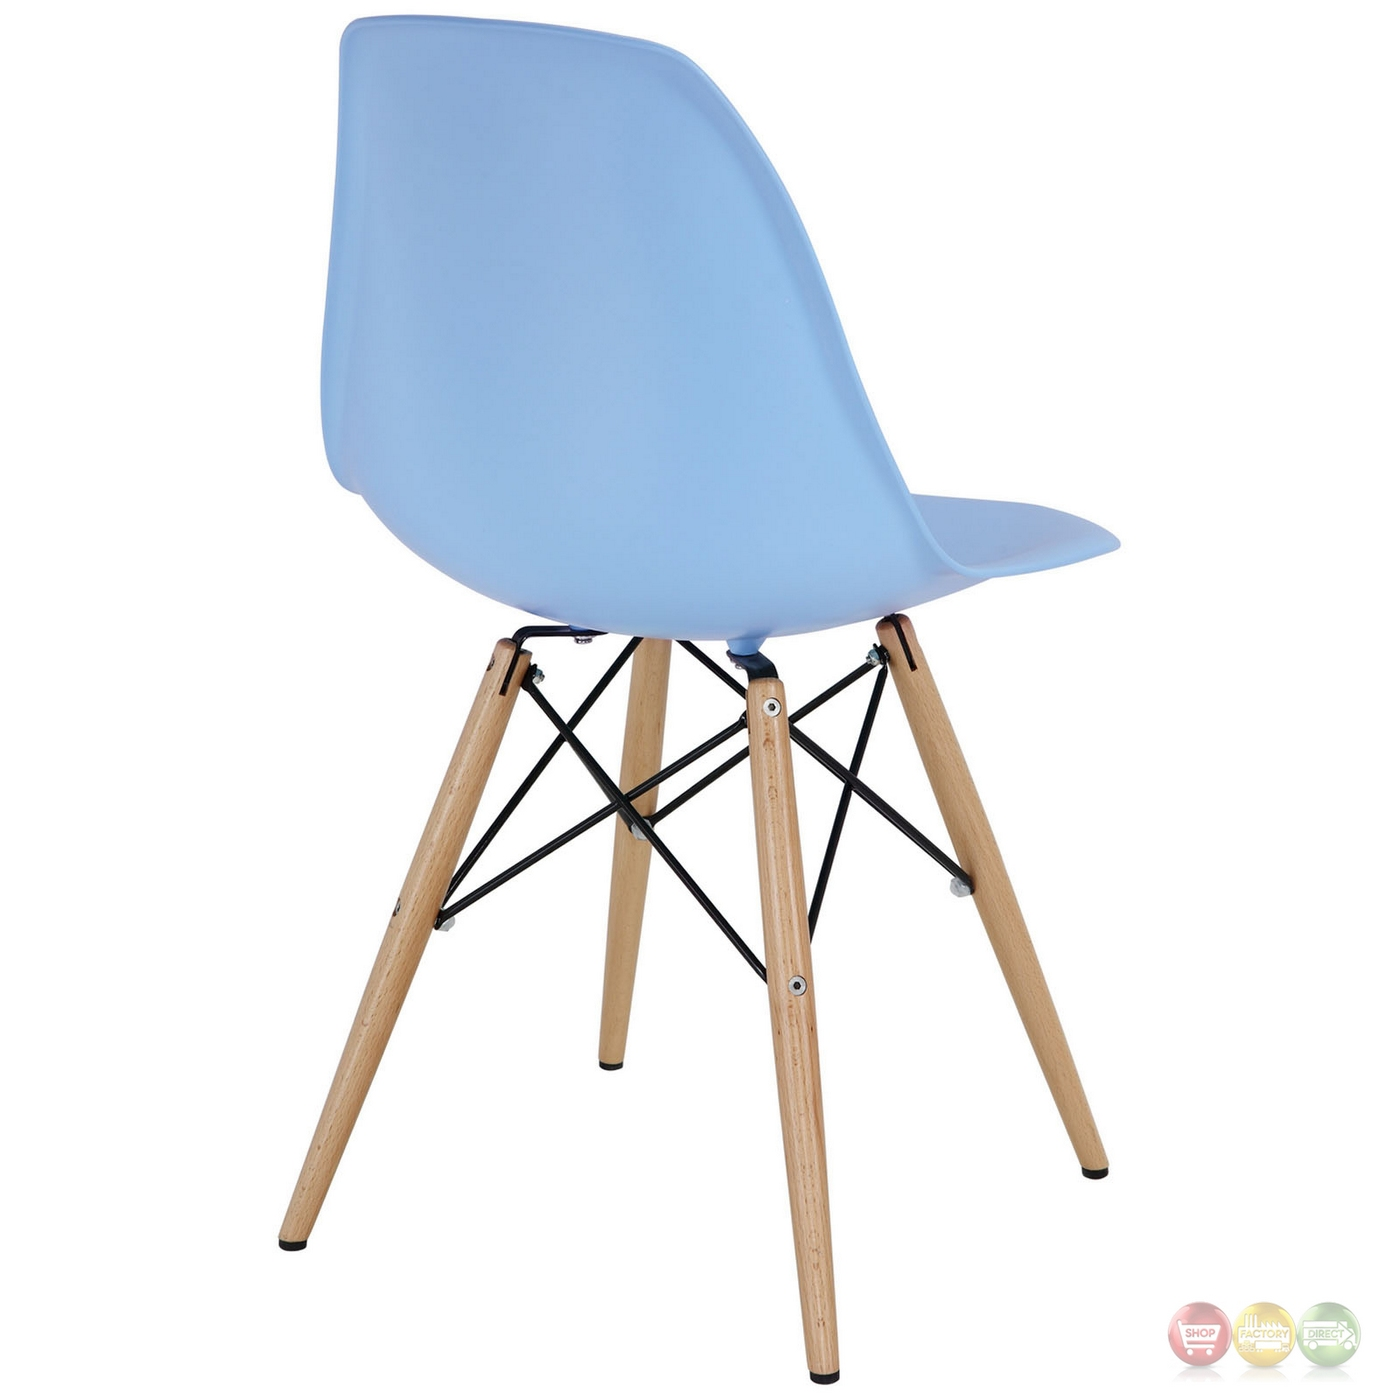 plastic chairs with steel legs fabric dining arms pyramid modern side chair wood and